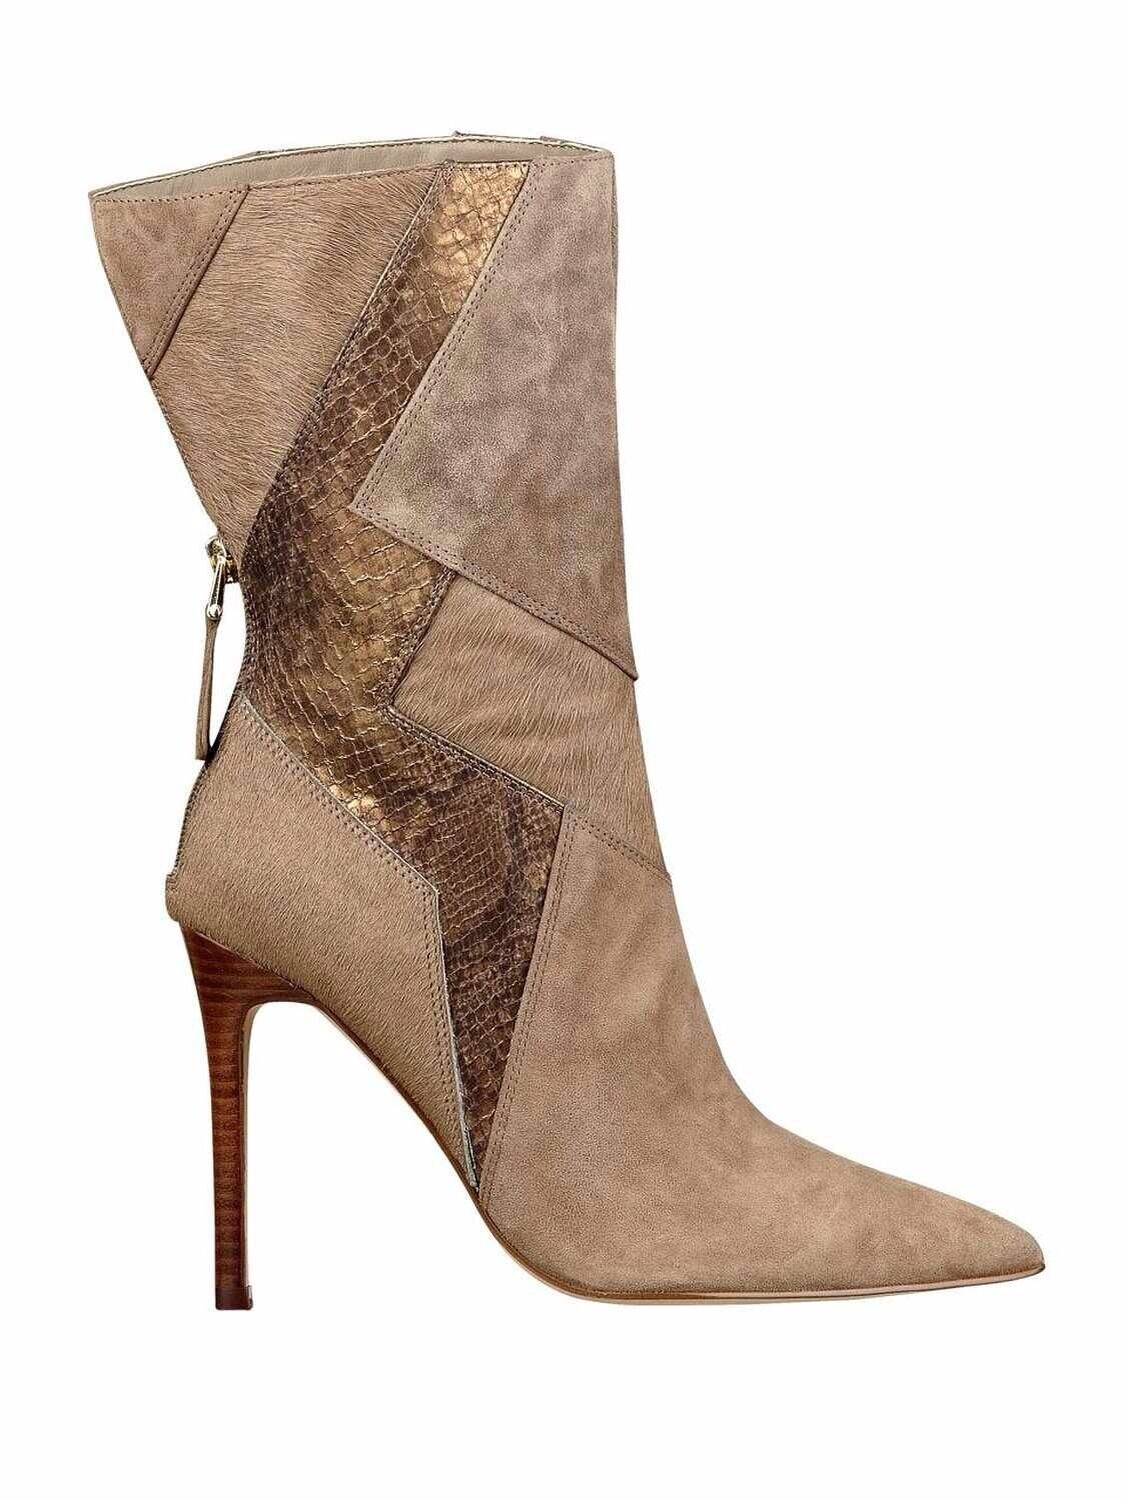 $249 GUESS NYXA MID CALF POINTED TOE BOOTIES HIGH HEELS GENUINE SUEDED SIZE 6